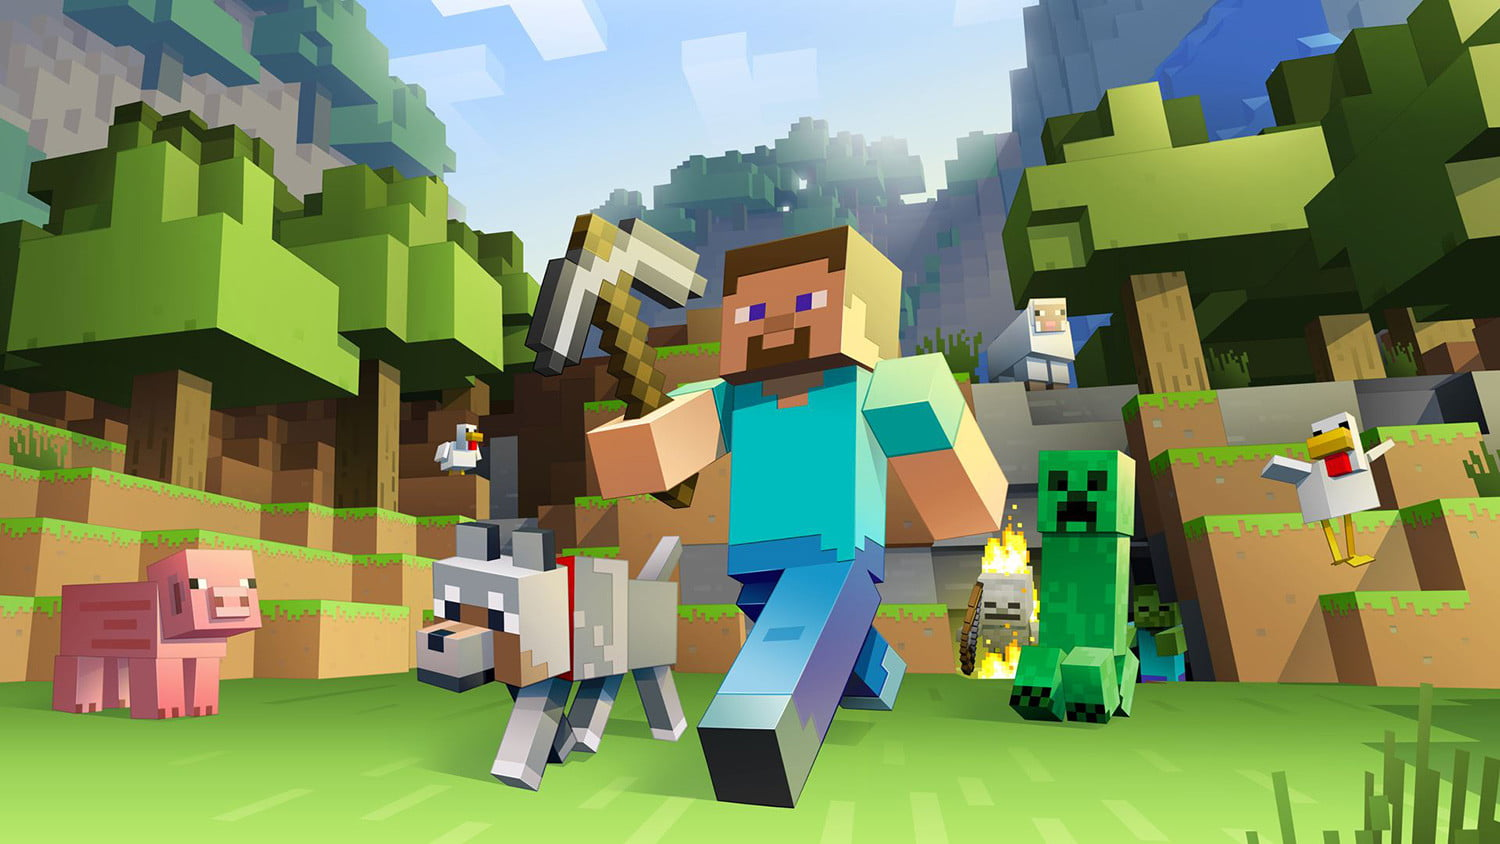 How To Make A Book Minecraft Xbox ~ Minecraft for xbox one finally gets mouse and keyboard support